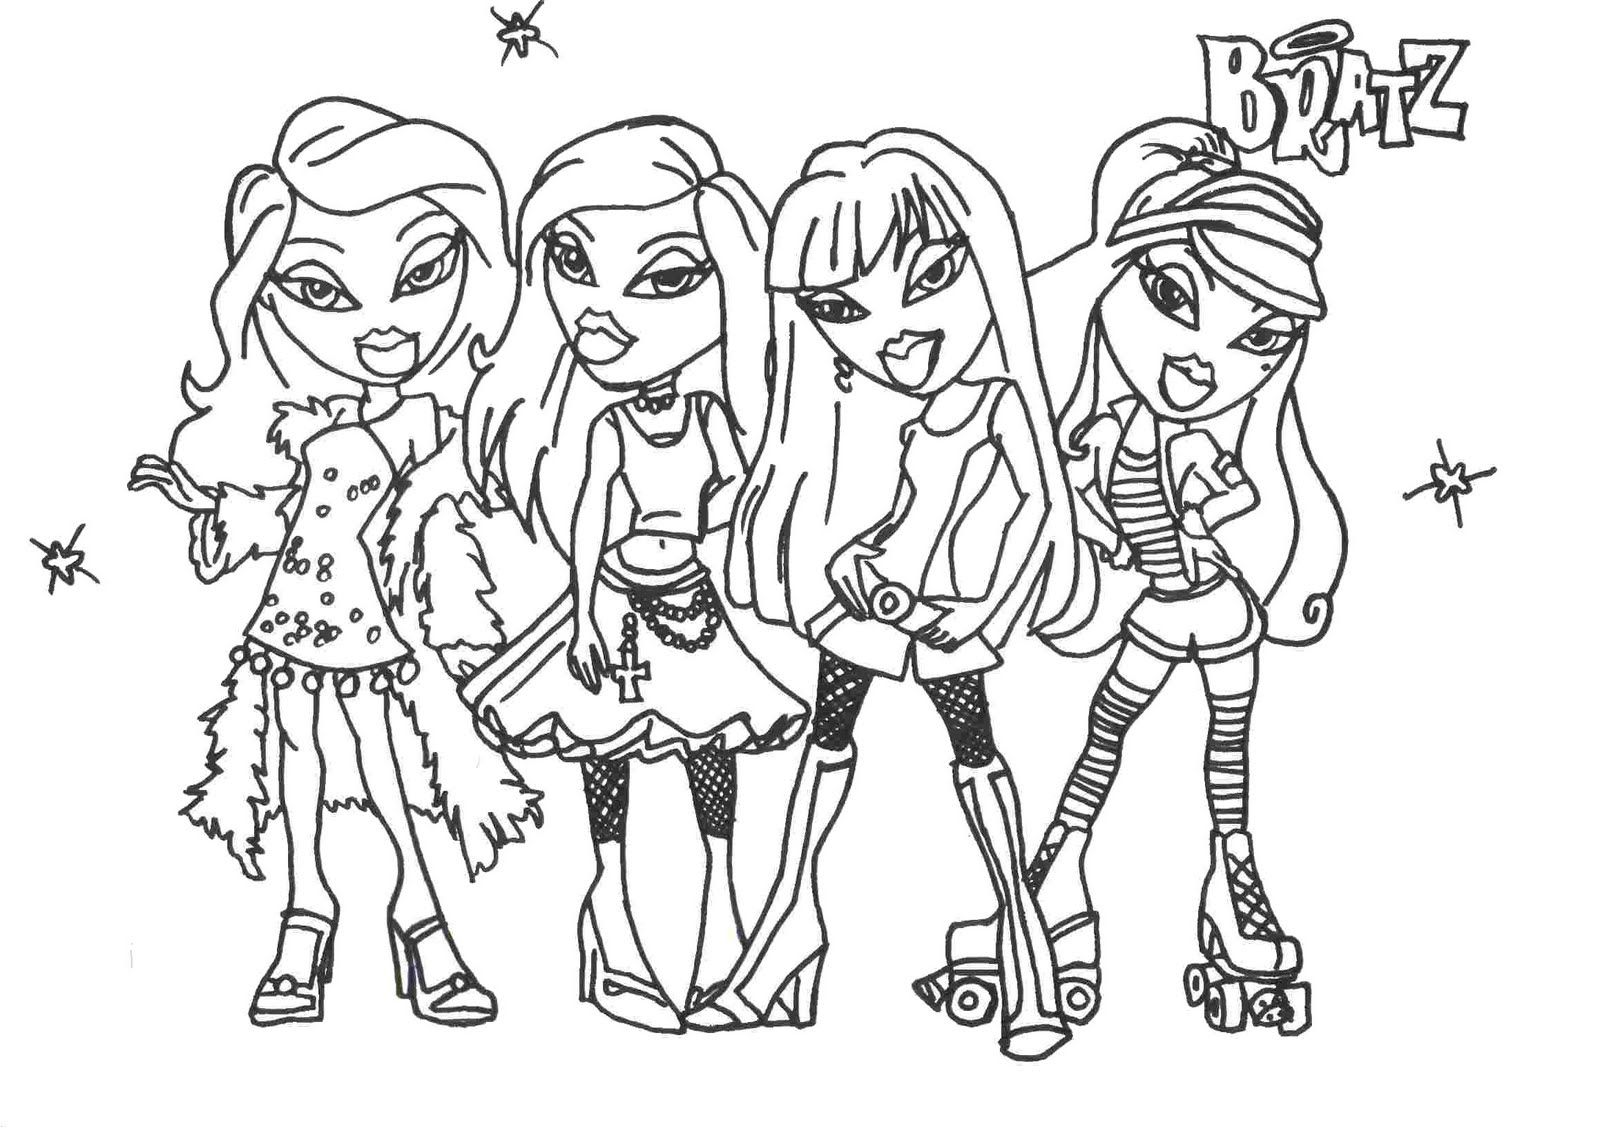 Coloring pages disney xd - Bratz Glamor Girls Coloring Pages Disney Princess Coloring Pages